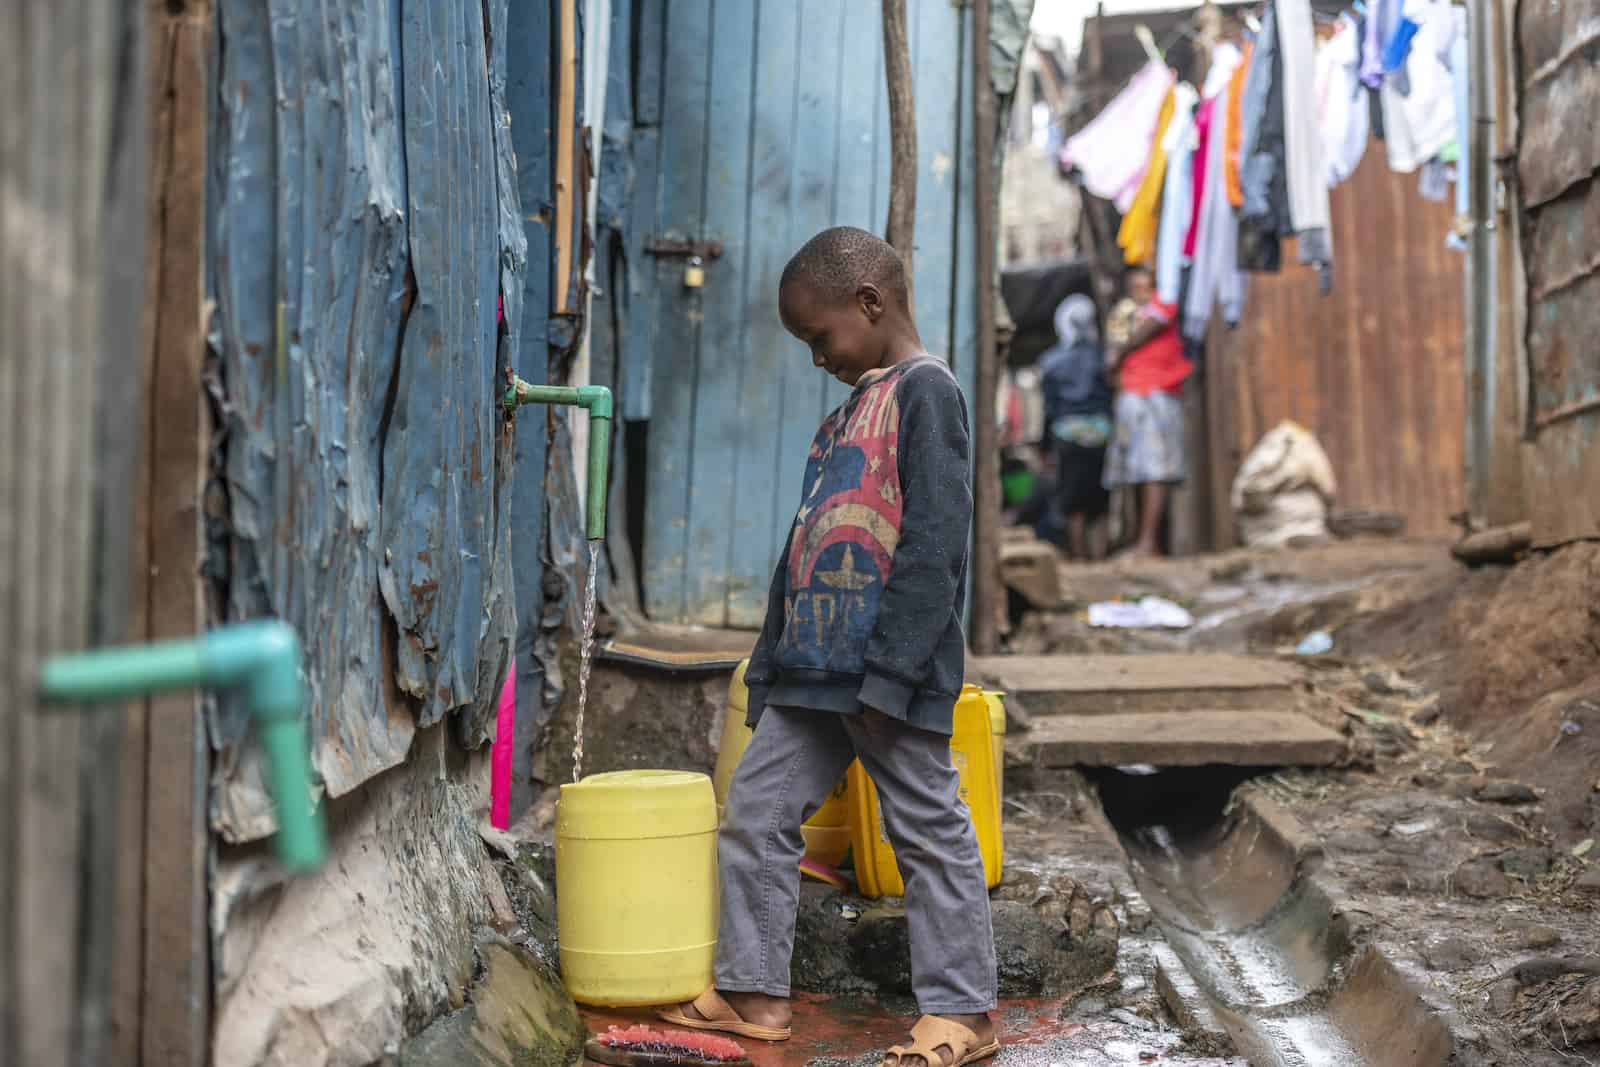 A boy stands in an alley filling a water jug at a tap.